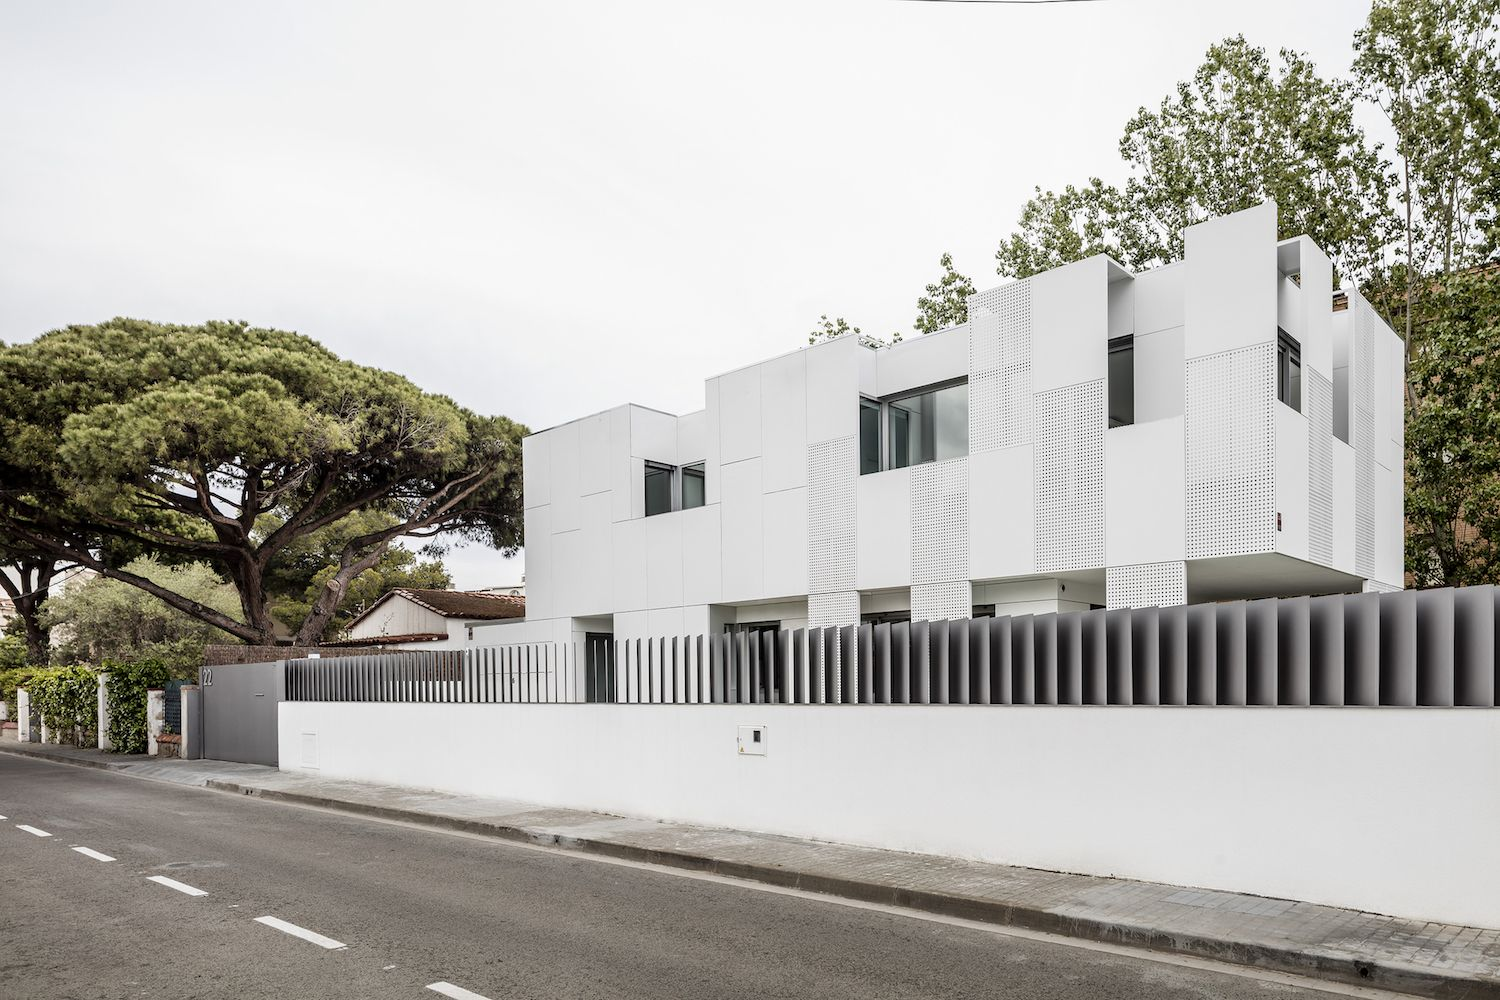 Stunning Single Family House By Ral Architects In Spain   CAANdesign |  Architecture And Home Design